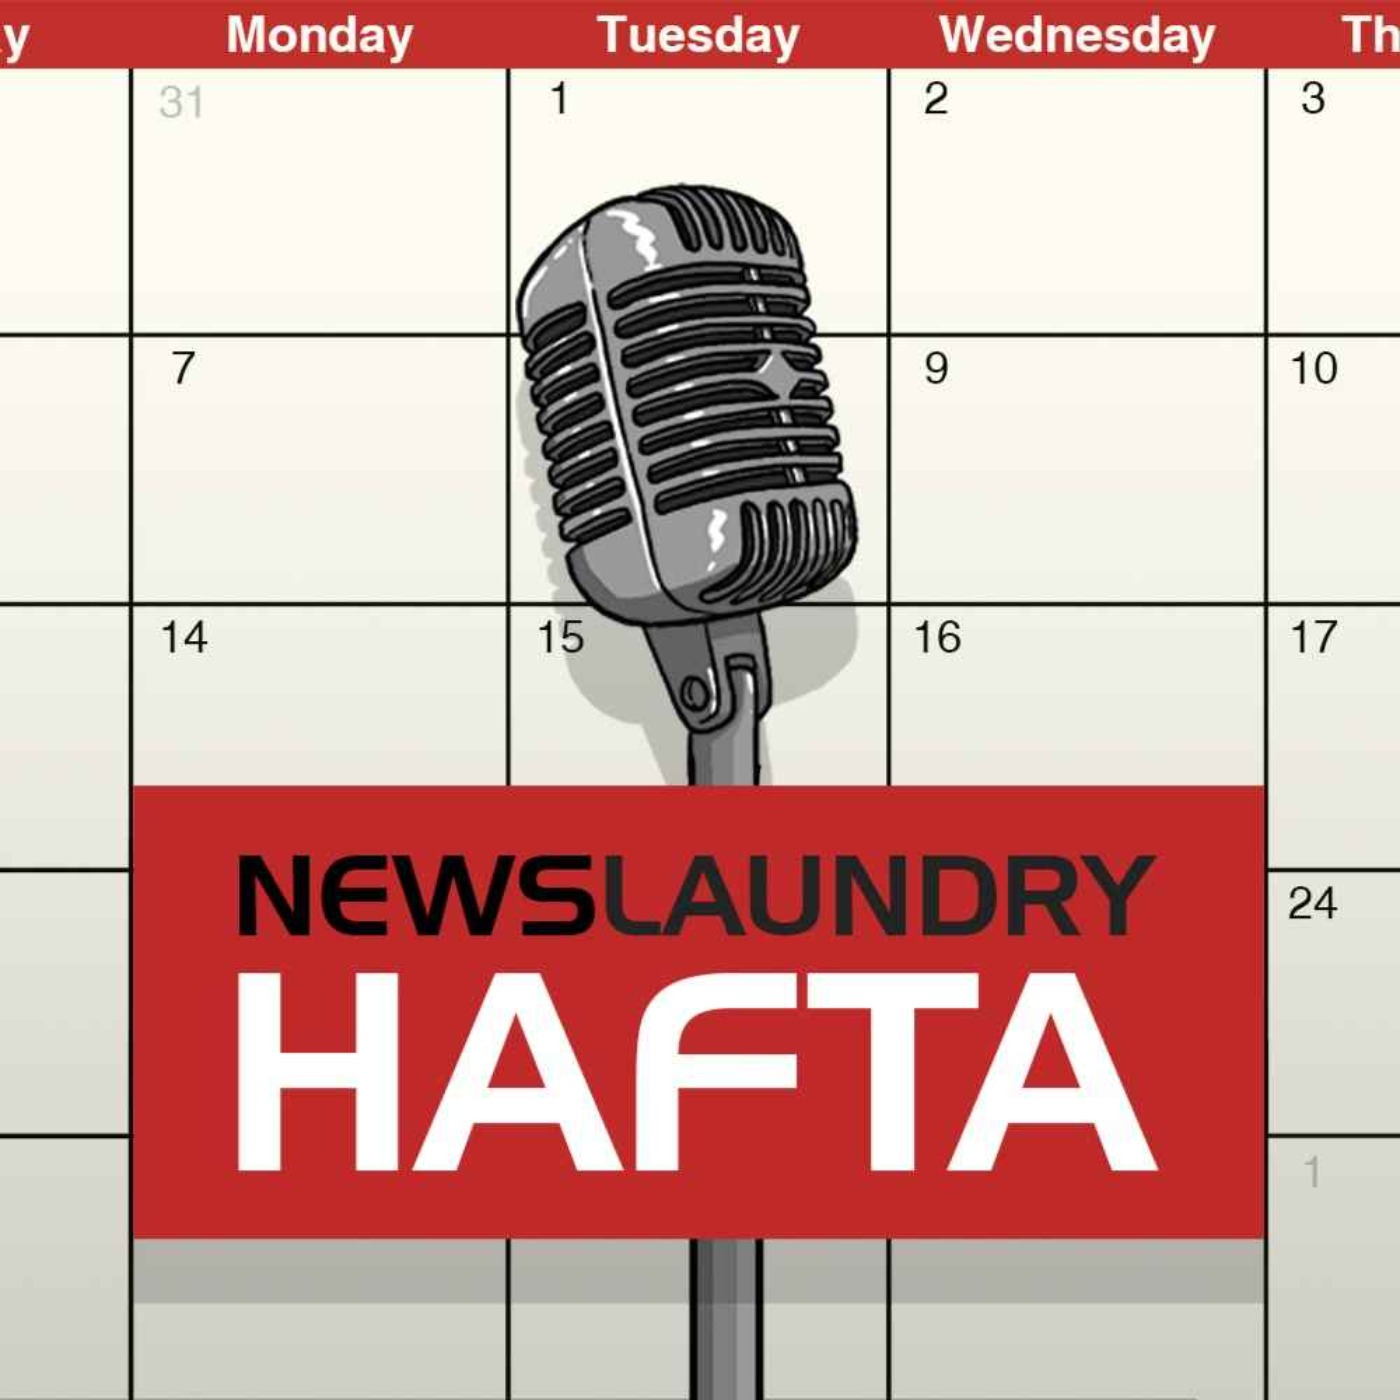 Chhota Hafta 307: Farmer protests, Bodoland accord, and parliament session cancelled